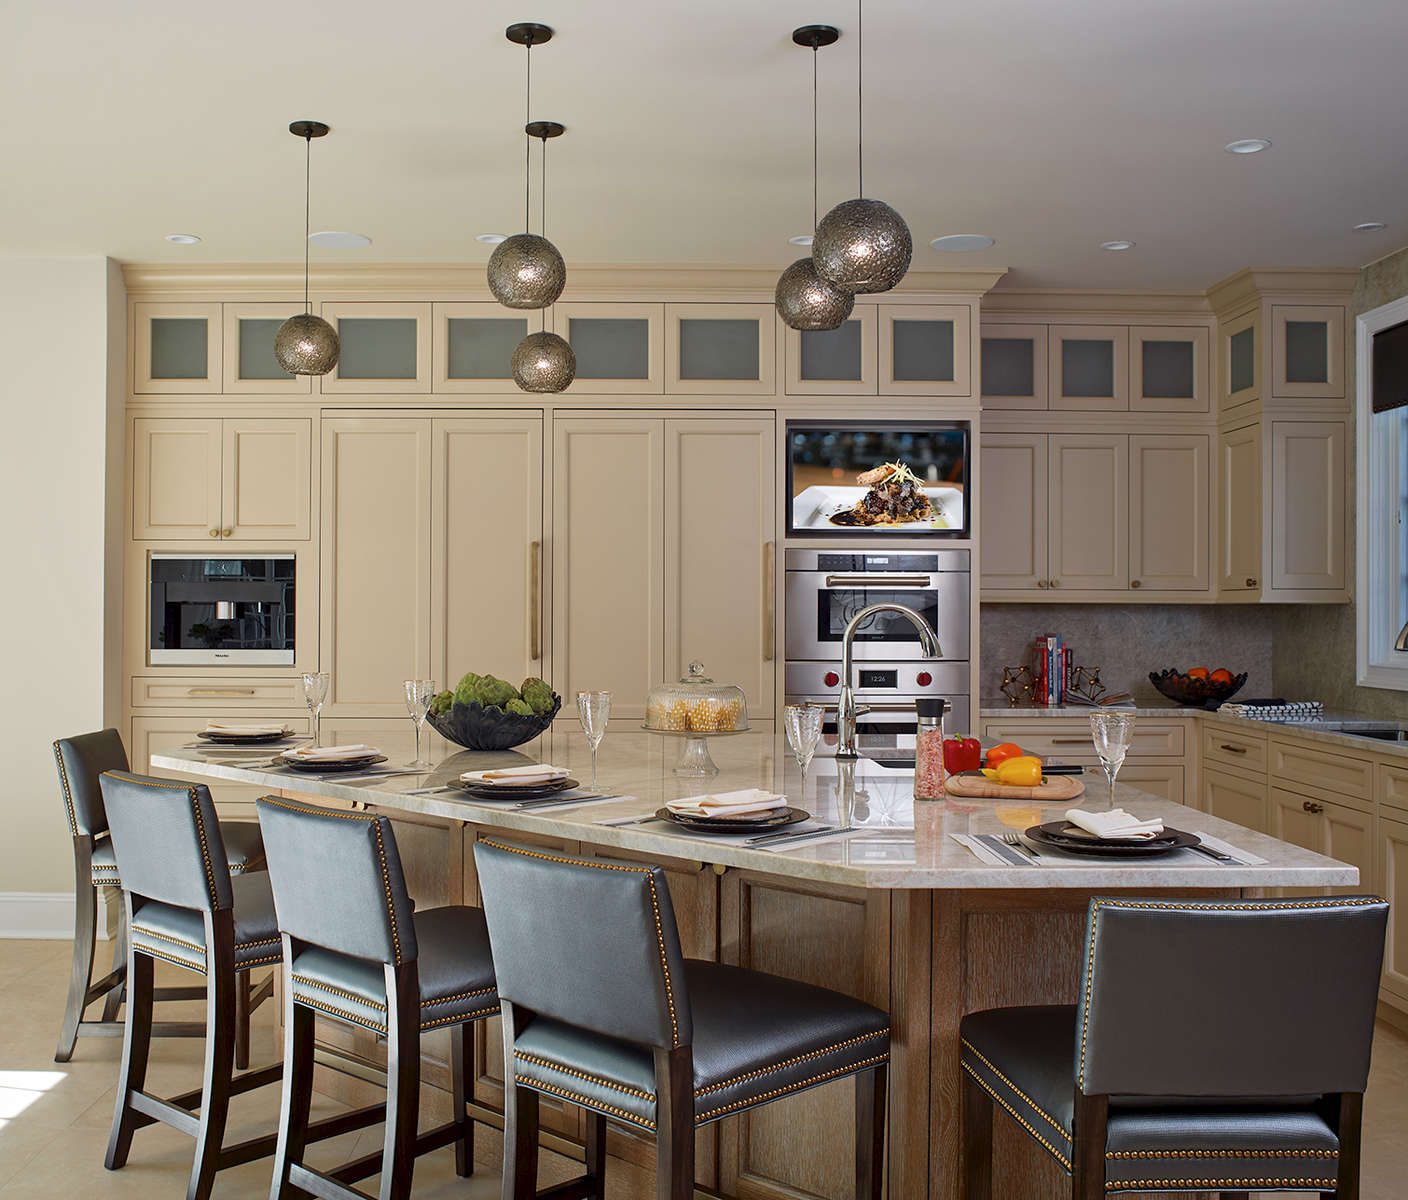 Two tone kitchen with taupe painted finish on the perimeter and a cerused wood finish on the island